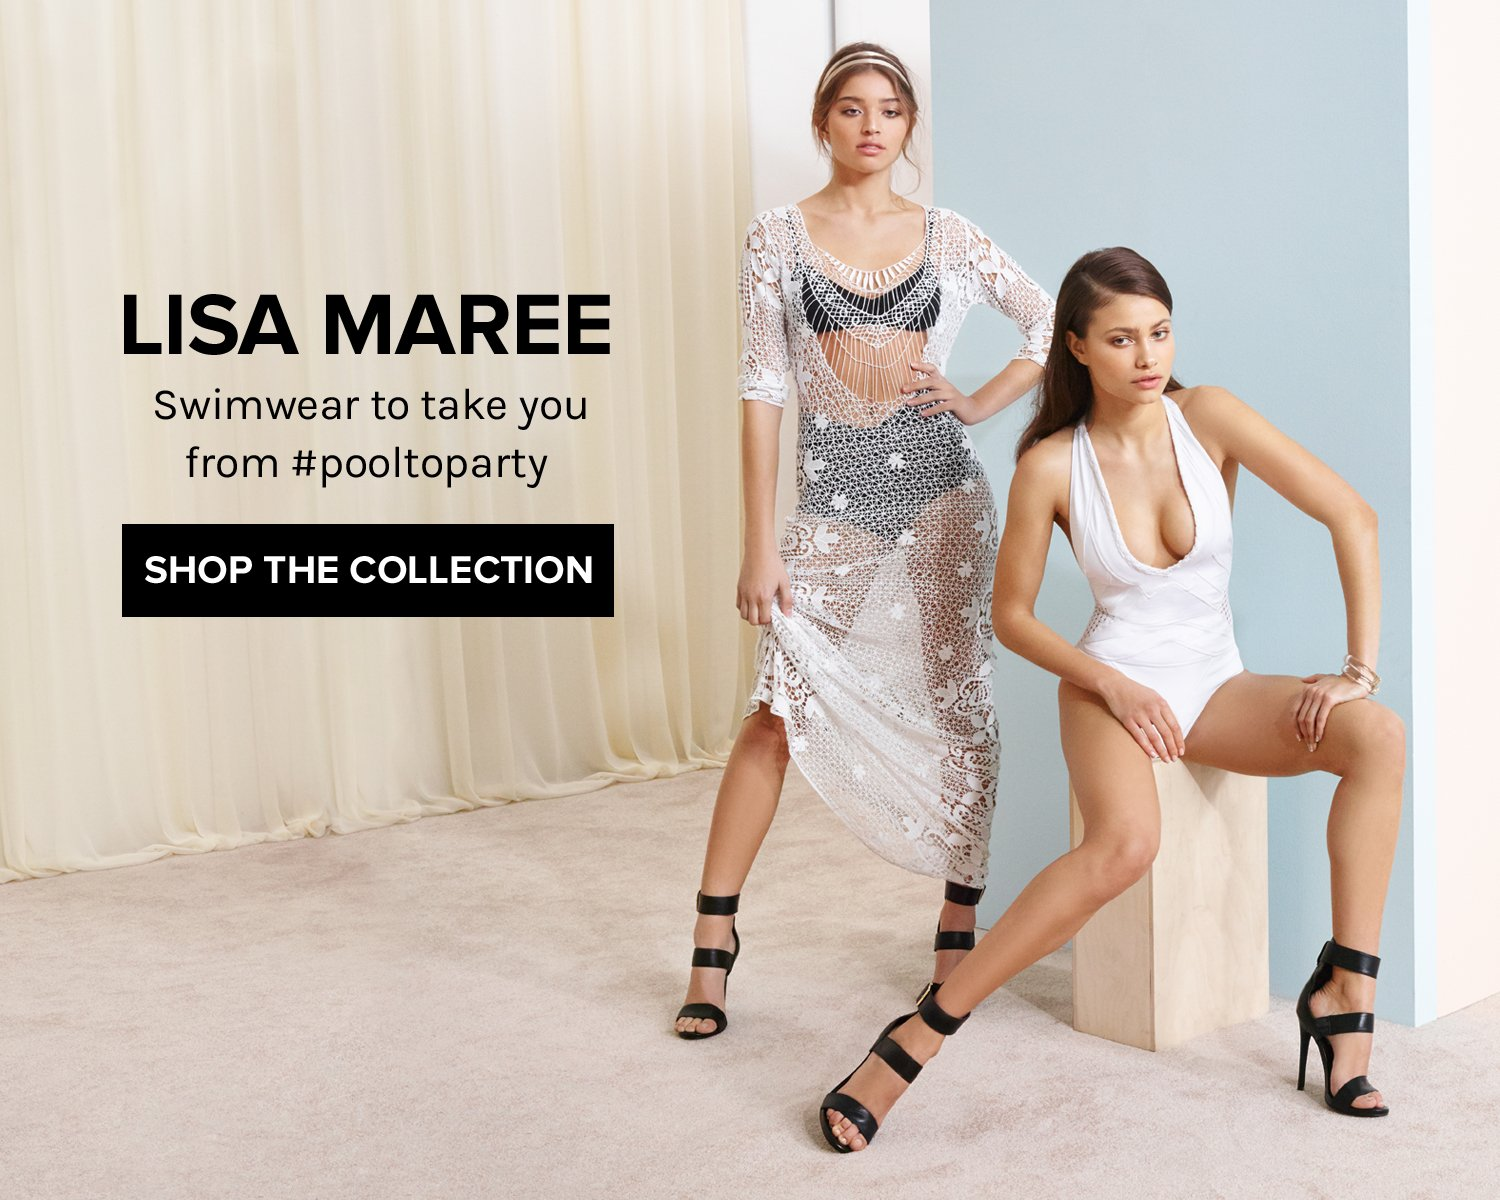 Lisa Maree. Swimwear to take you from #pooltoparty. SHOP THE COLLECTION!